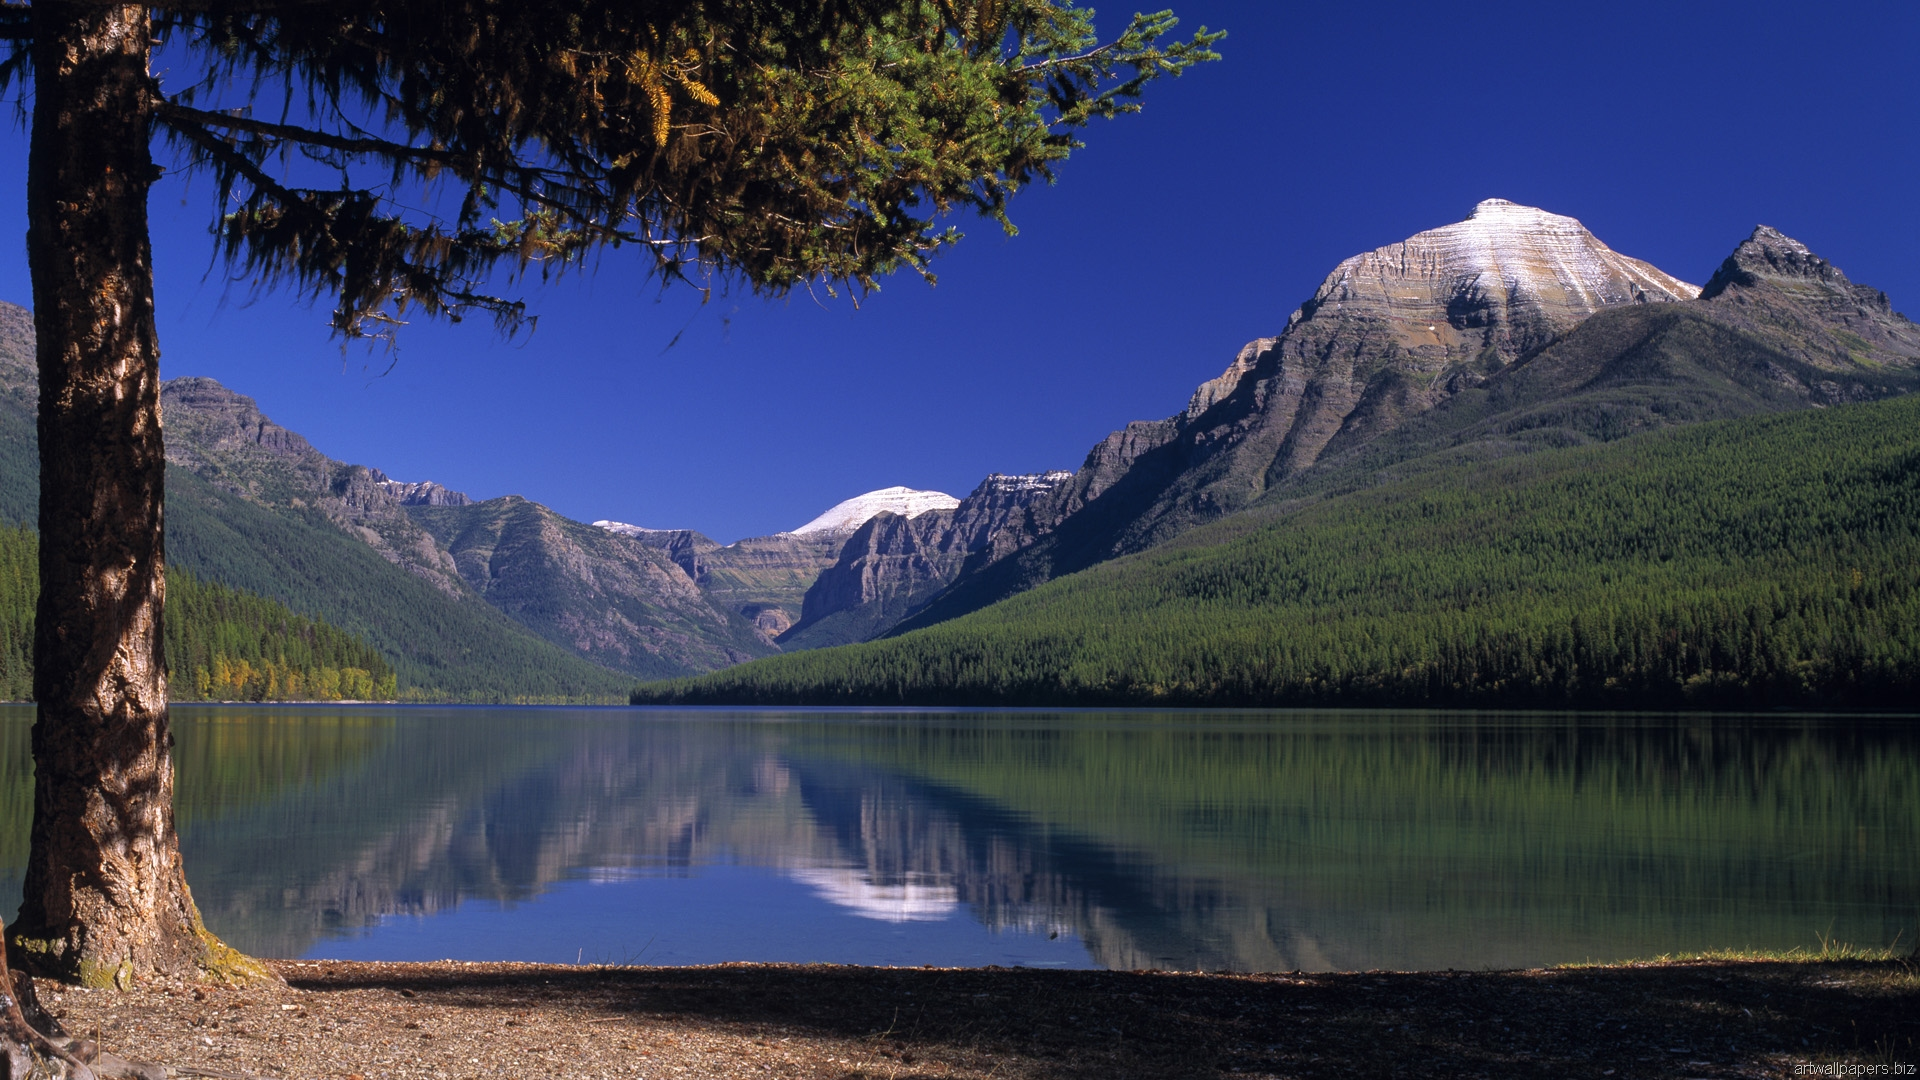 Glacier national park wallpapers high quality download free - Glacier national park wallpaper ...